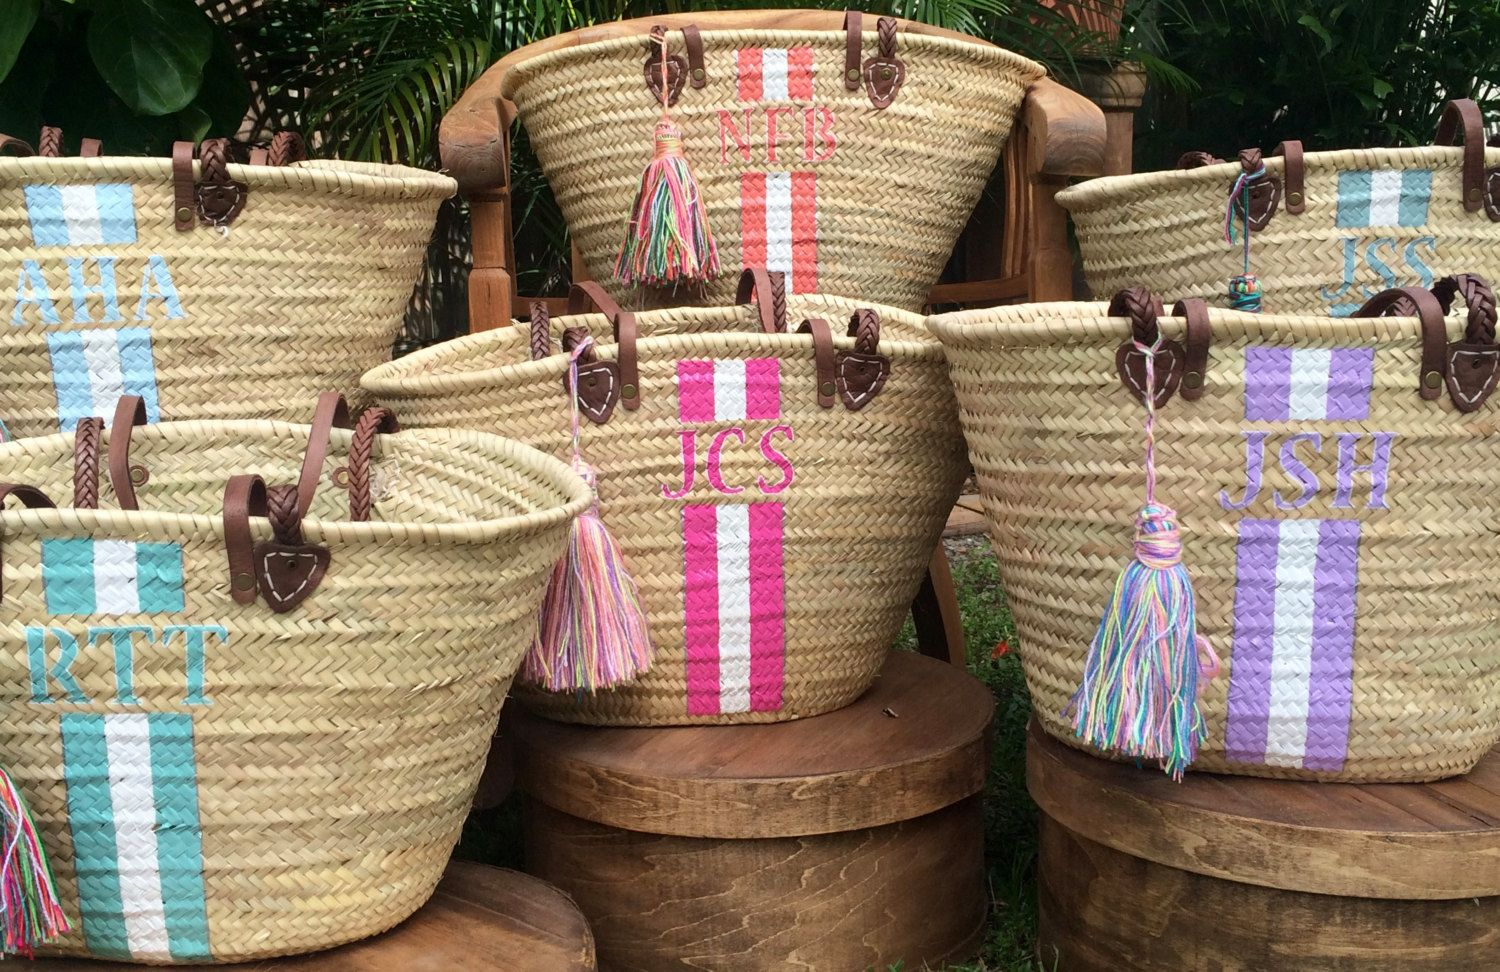 Monogrammed Straw Tote Bags with Tassels